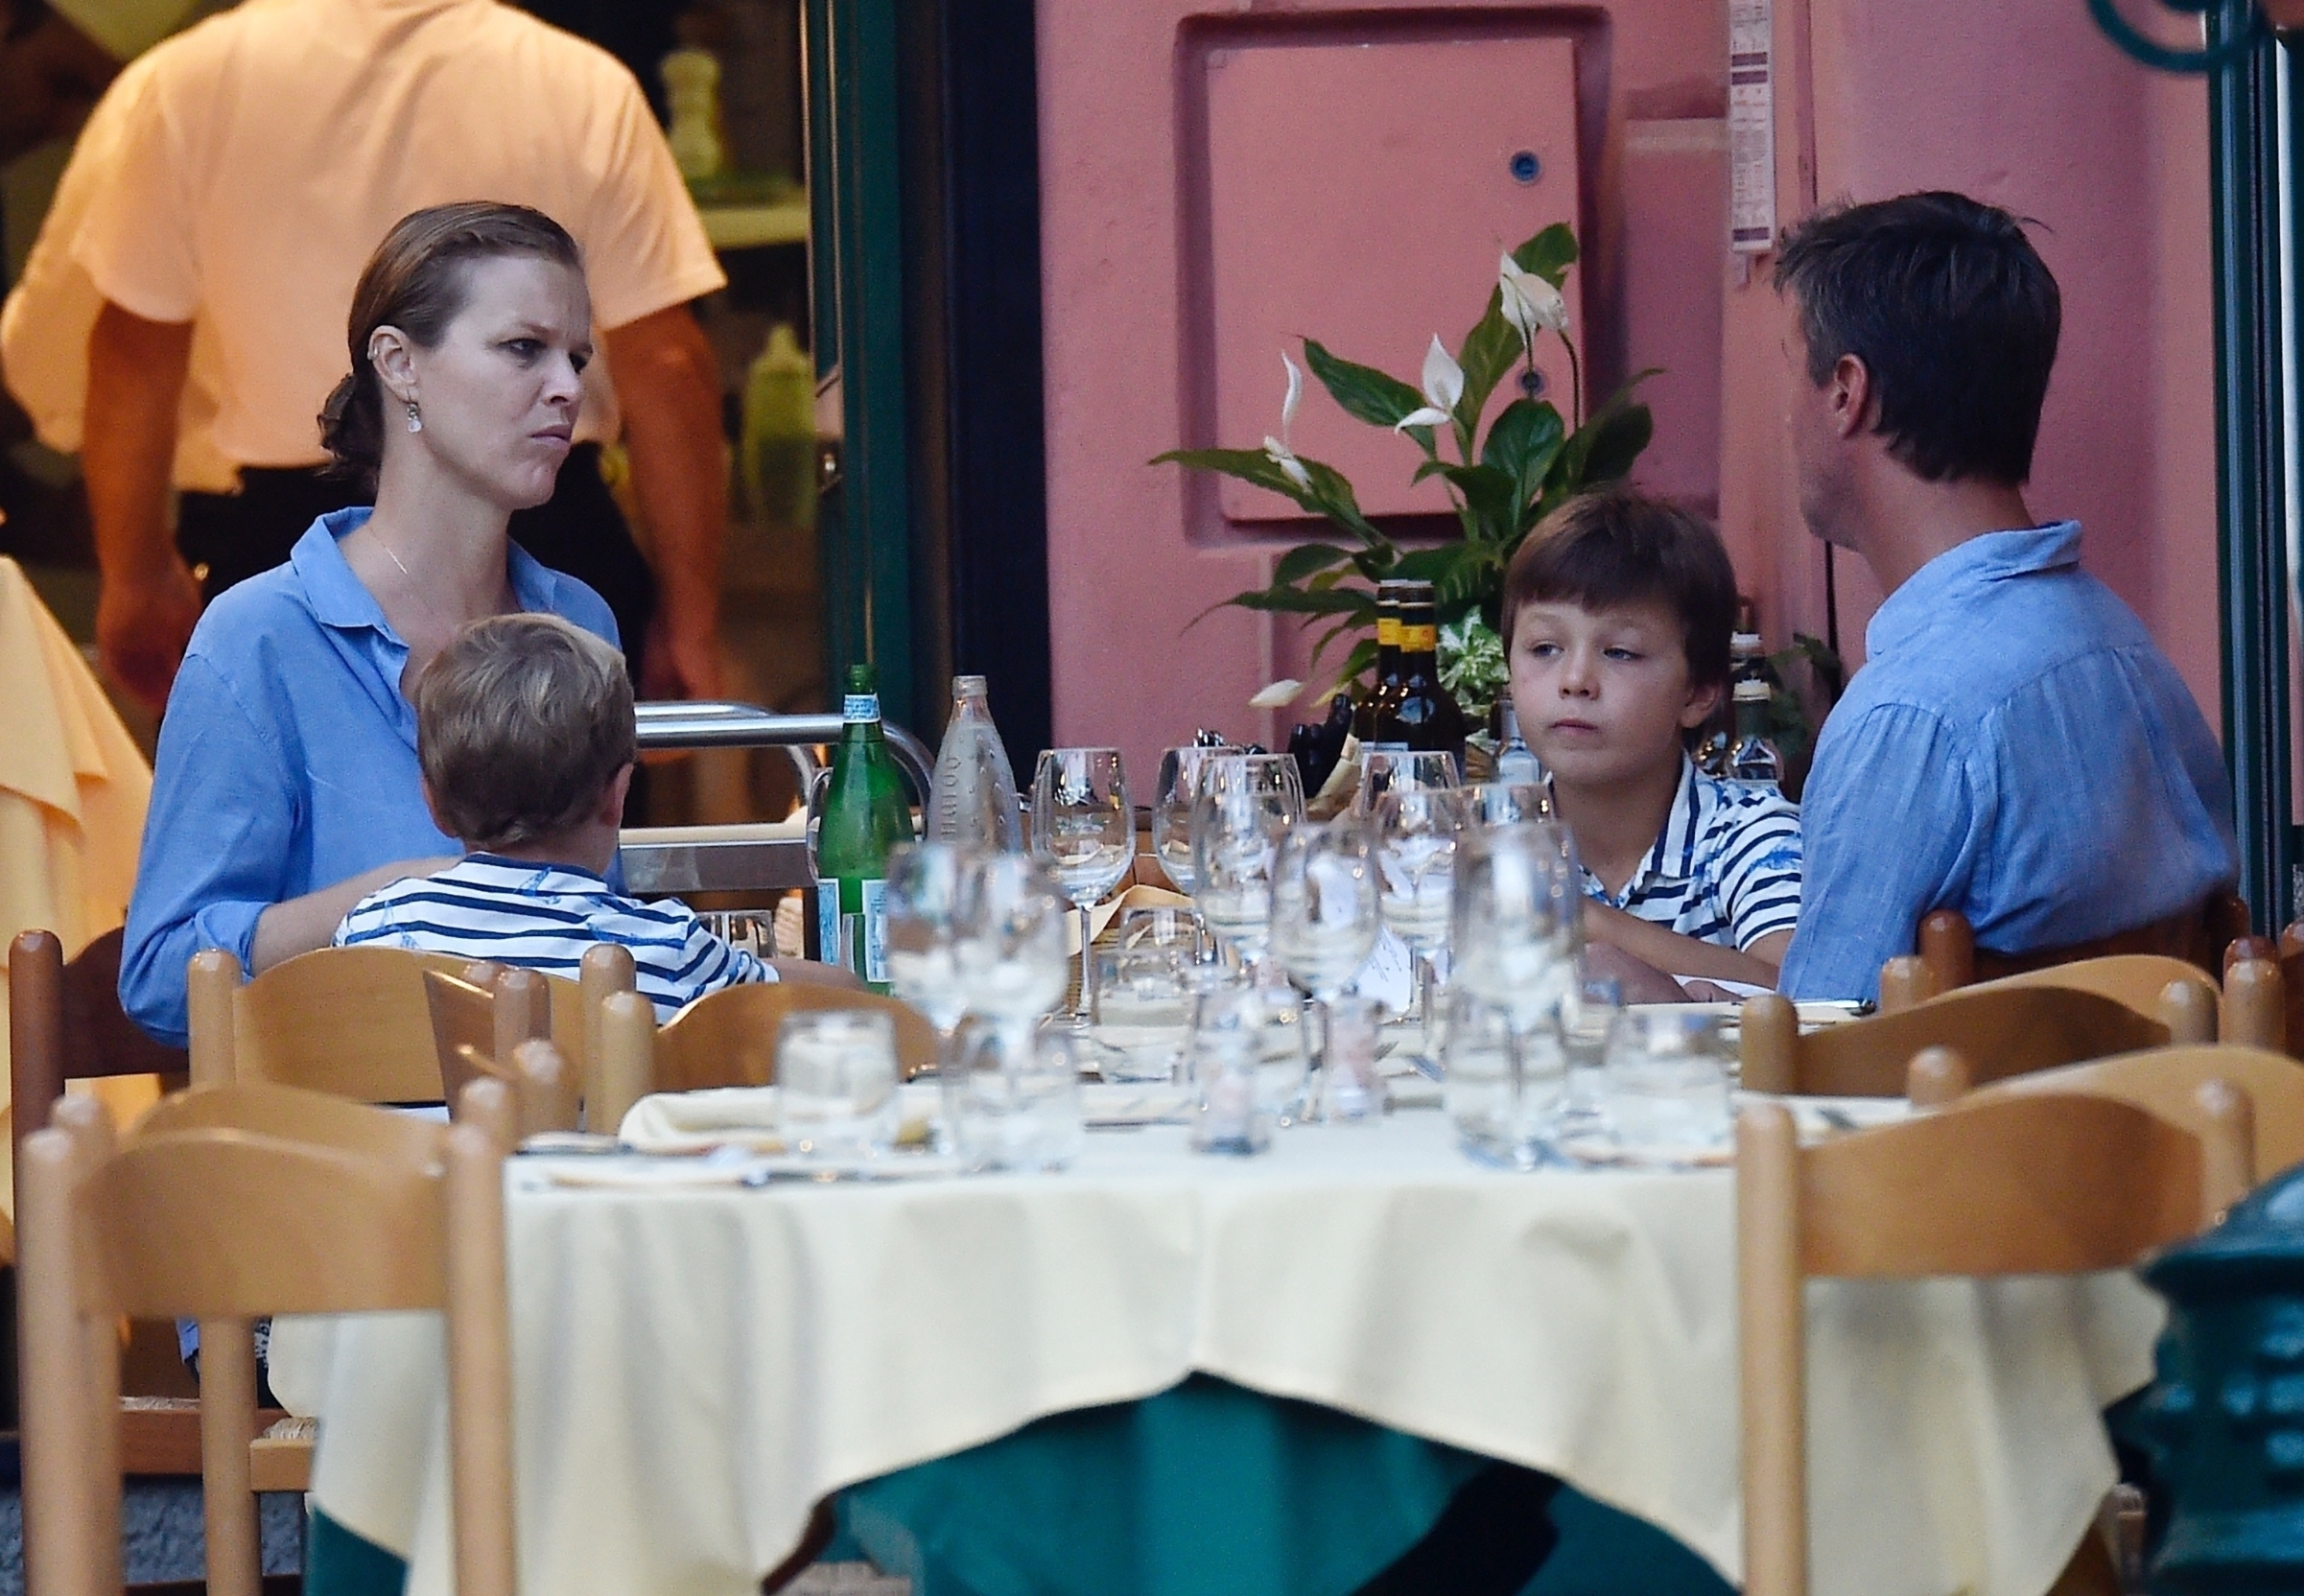 portofino, ITALY  - *EXCLUSIVE*  - Model Eva Herzigova with her husband along with their children on holiday in Portofino  BACKGRID UK 13 SEPTEMBER 2019, Image: 470807285, License: Rights-managed, Restrictions: RIGHTS: NO WEB - WORLDWIDE EXCEPT IN ITALY, Model Release: no, Credit line: Profimedia, Backgrid UK